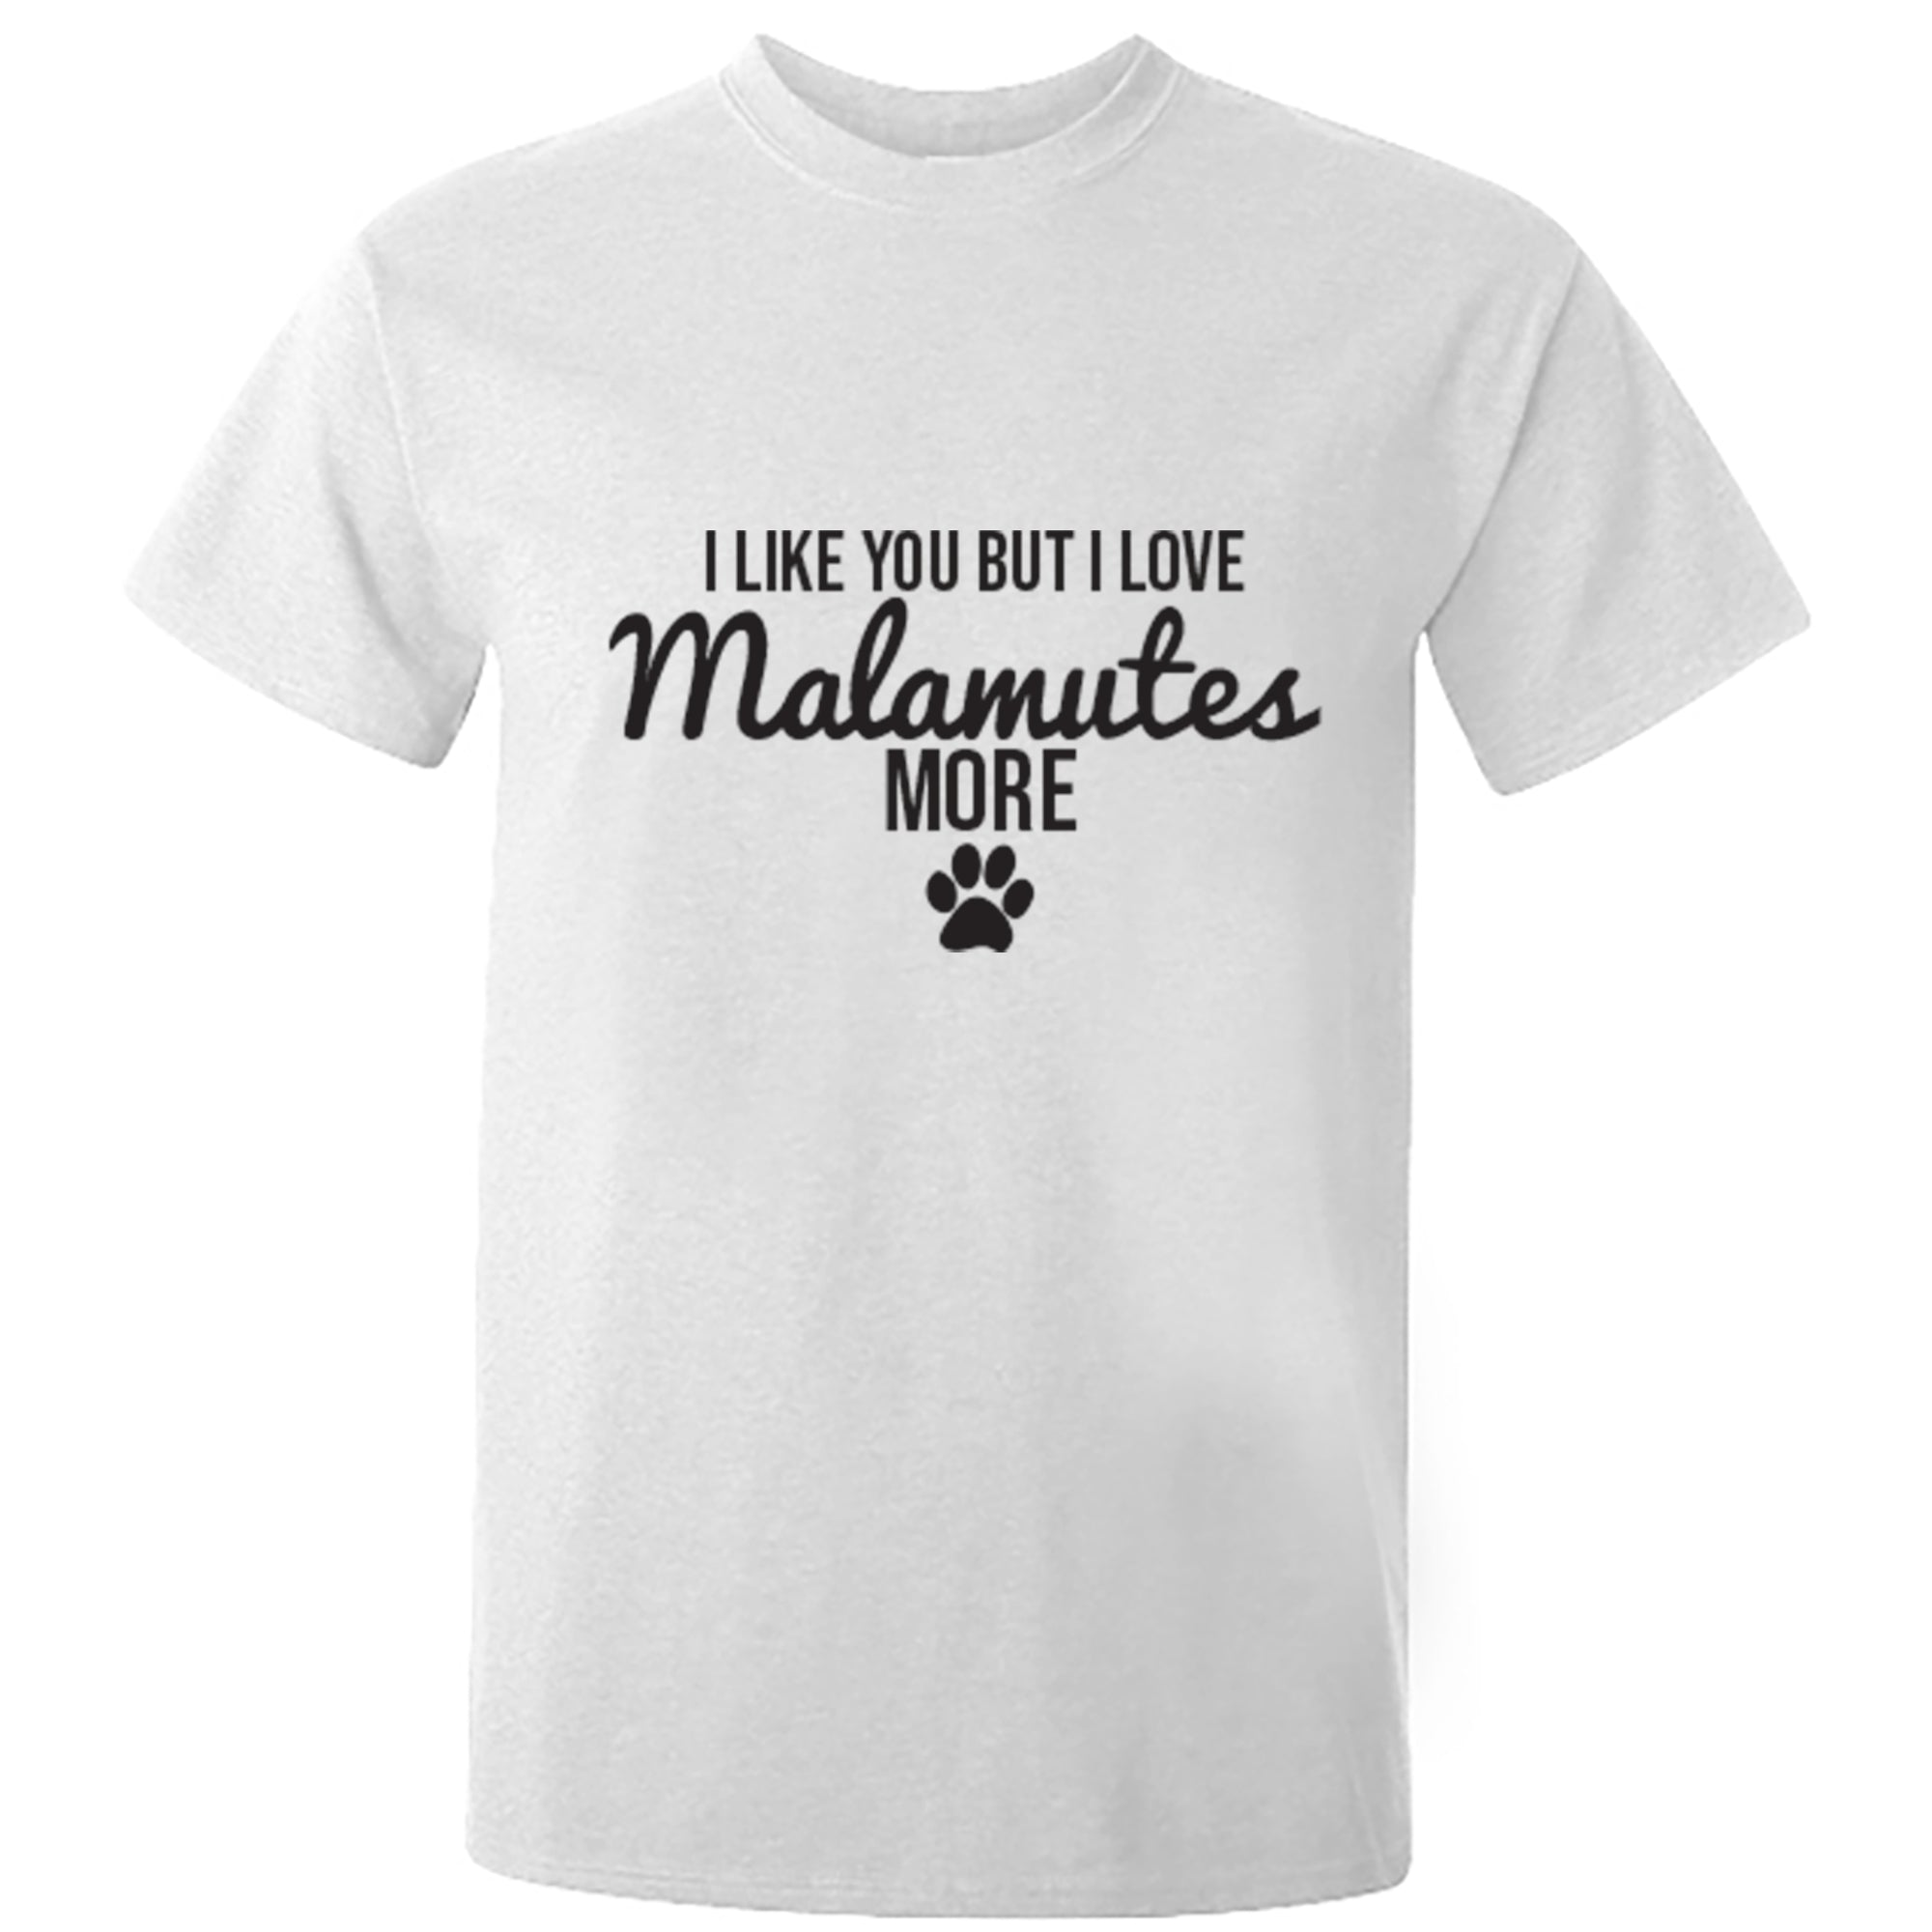 I Like You But I Love Malamutes More Unisex Fit T-Shirt S0097 - Illustrated Identity Ltd.